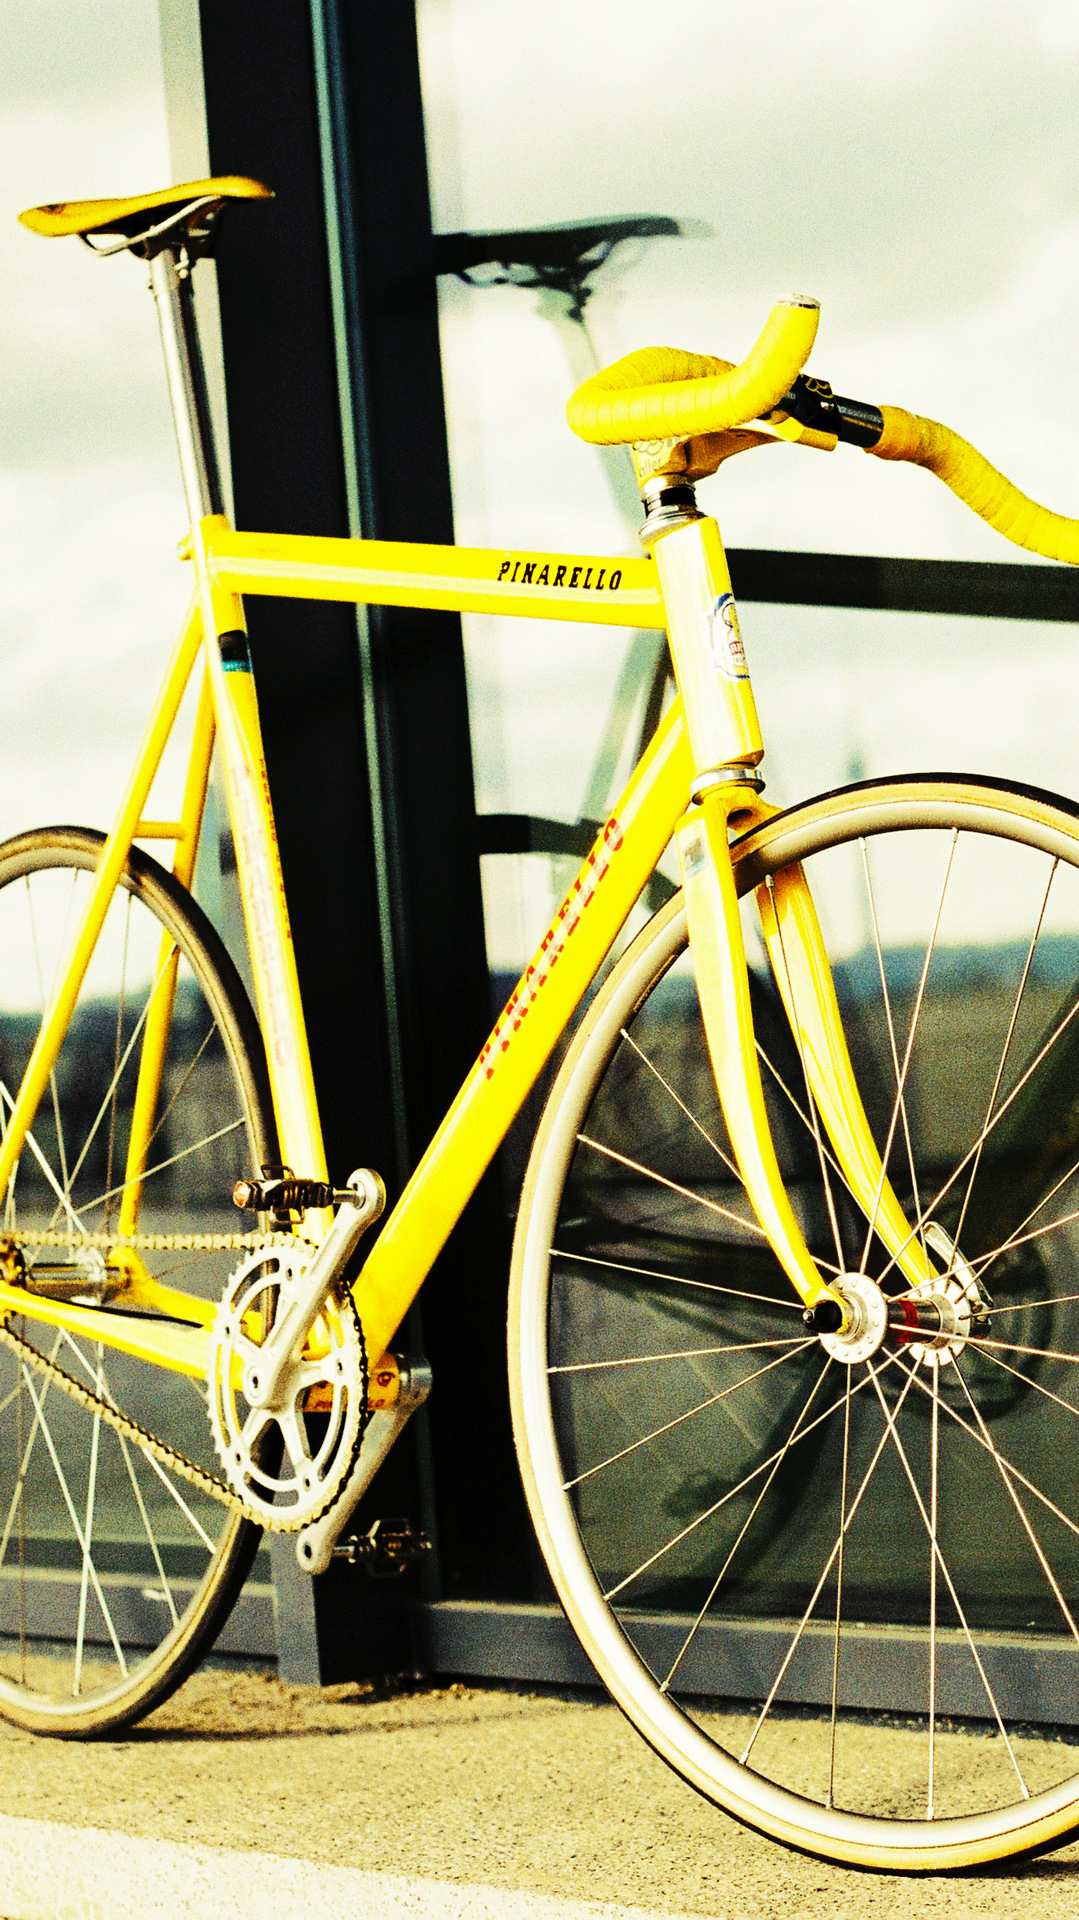 fixie-iphone-wallpapers-1